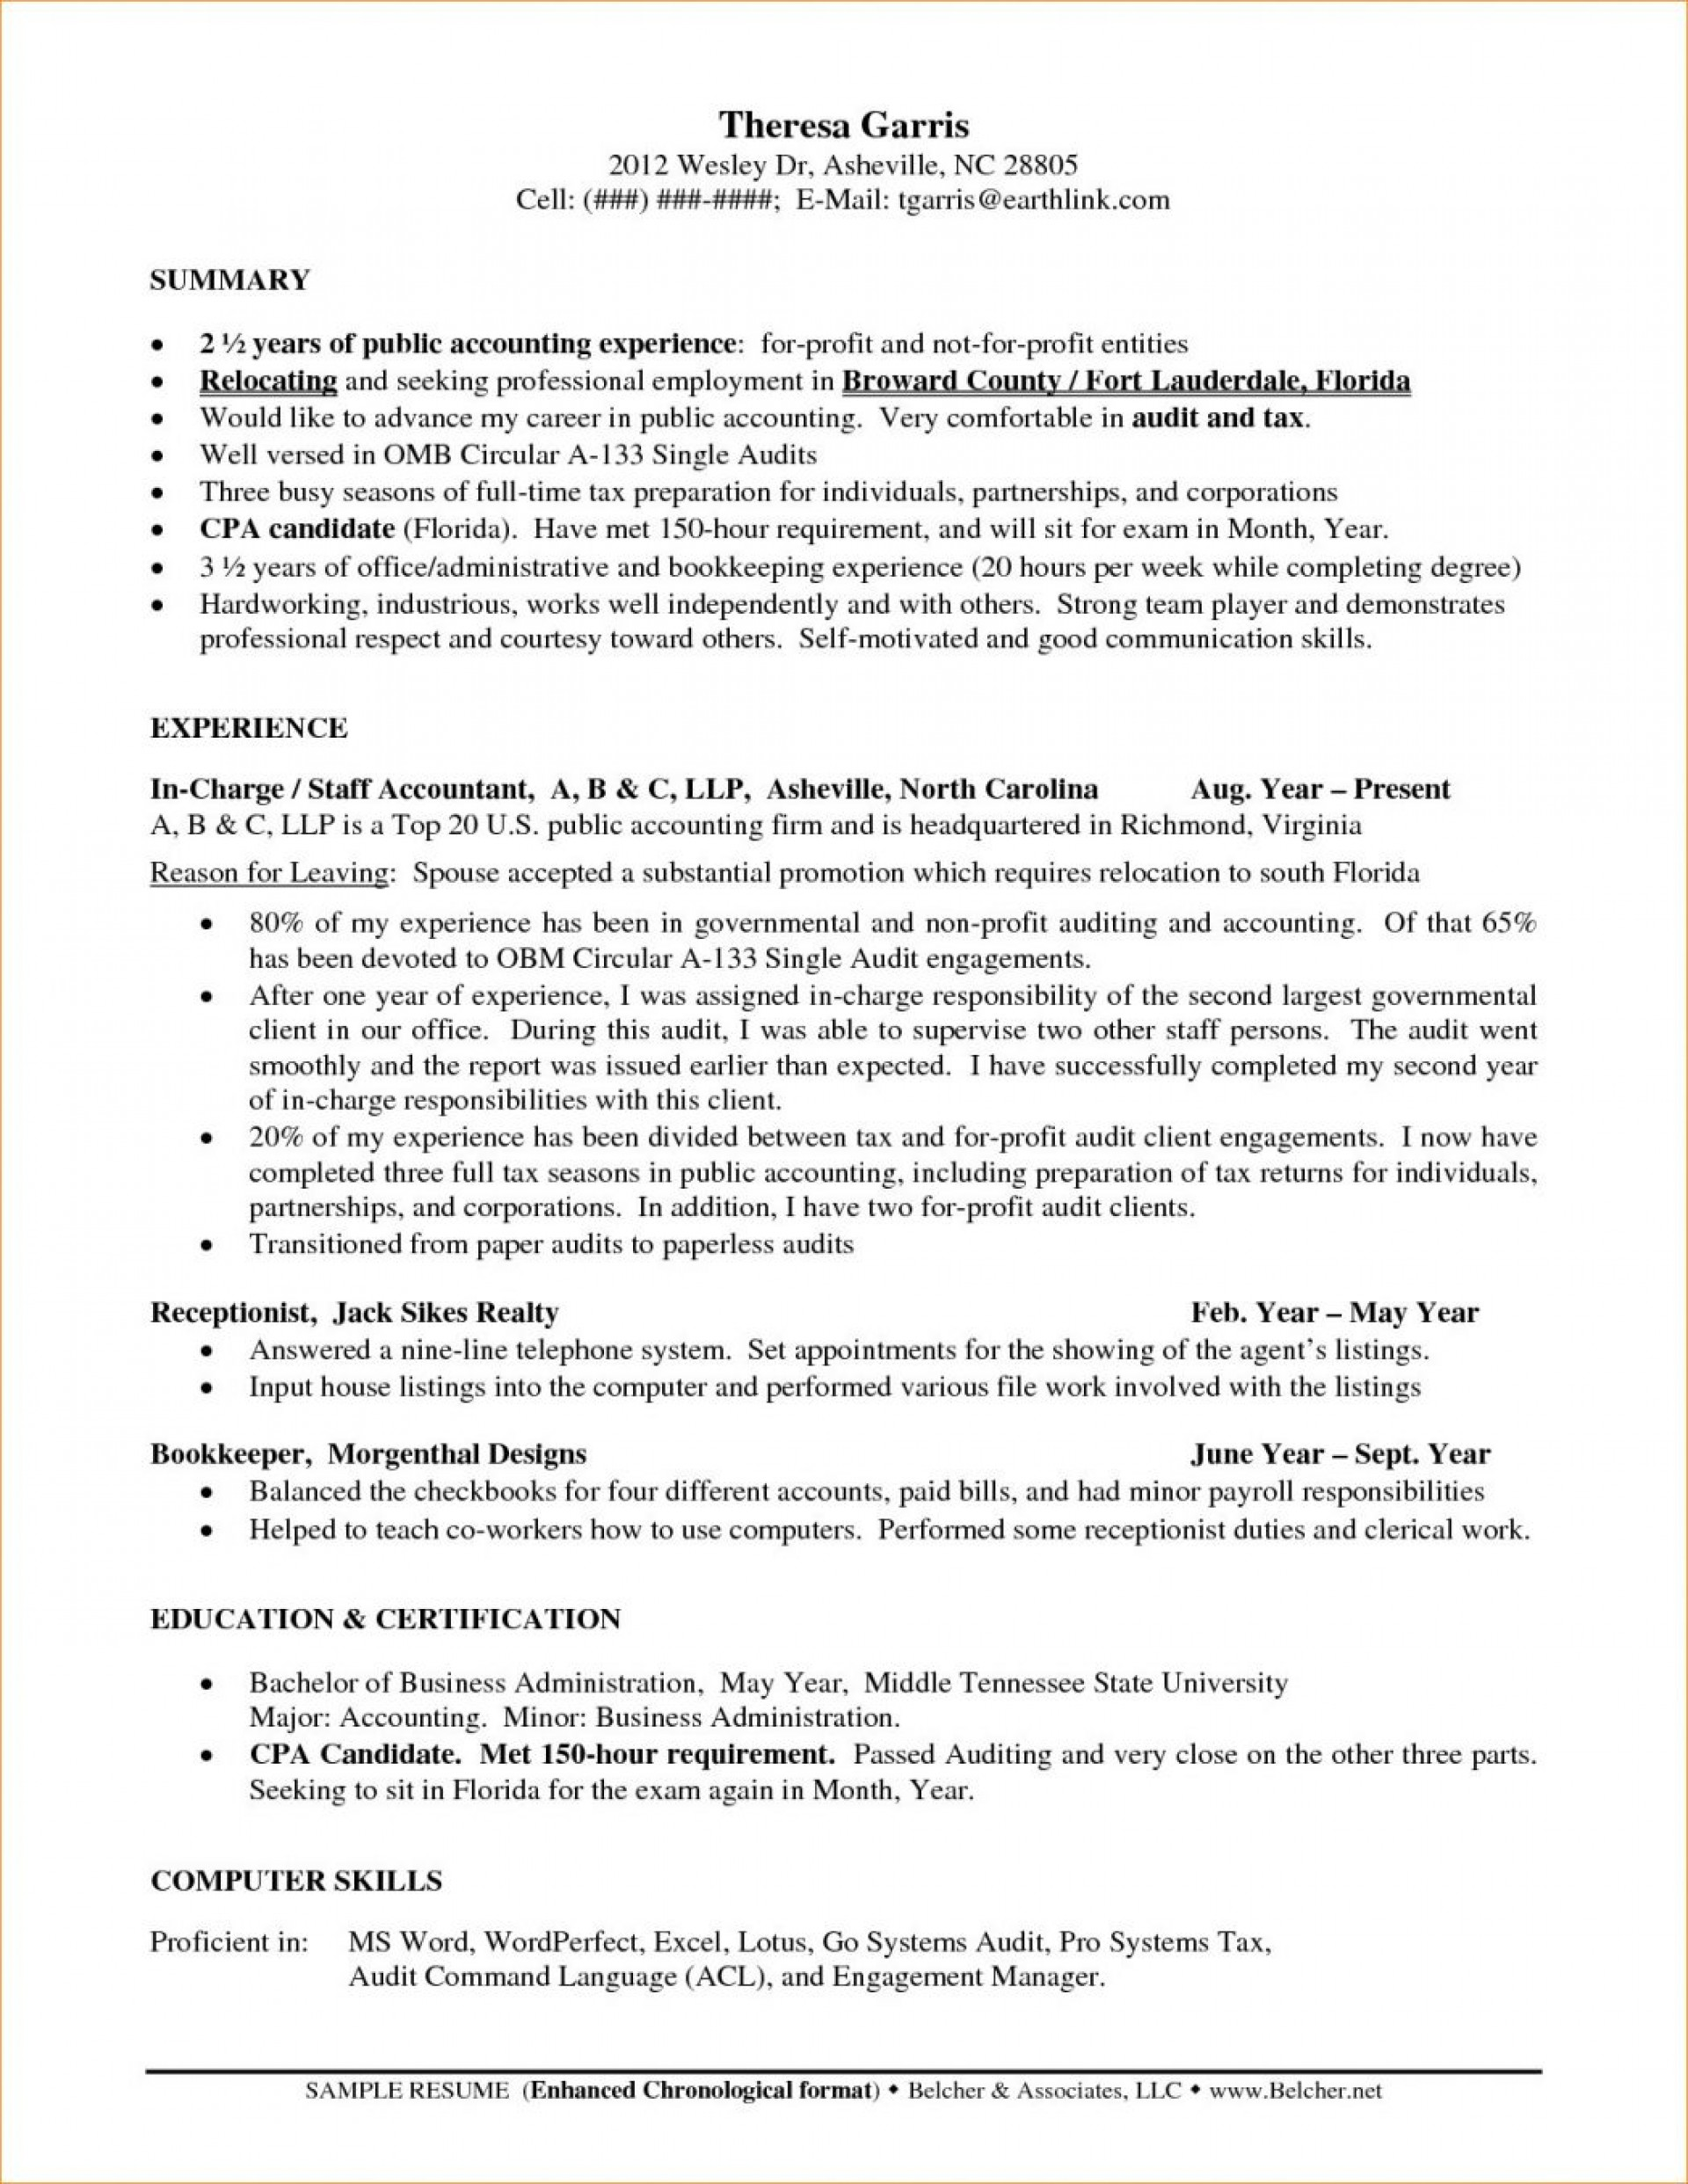 024 Essay Example Best Solutions Of Professional Mba Reflective Help Mri Tech Writing On Teaching Sample Cover Grea Leadership Introduction Using Gibbs Model In Third Person Work Experience Beautiful Examples About Life Pdf Apa 1920